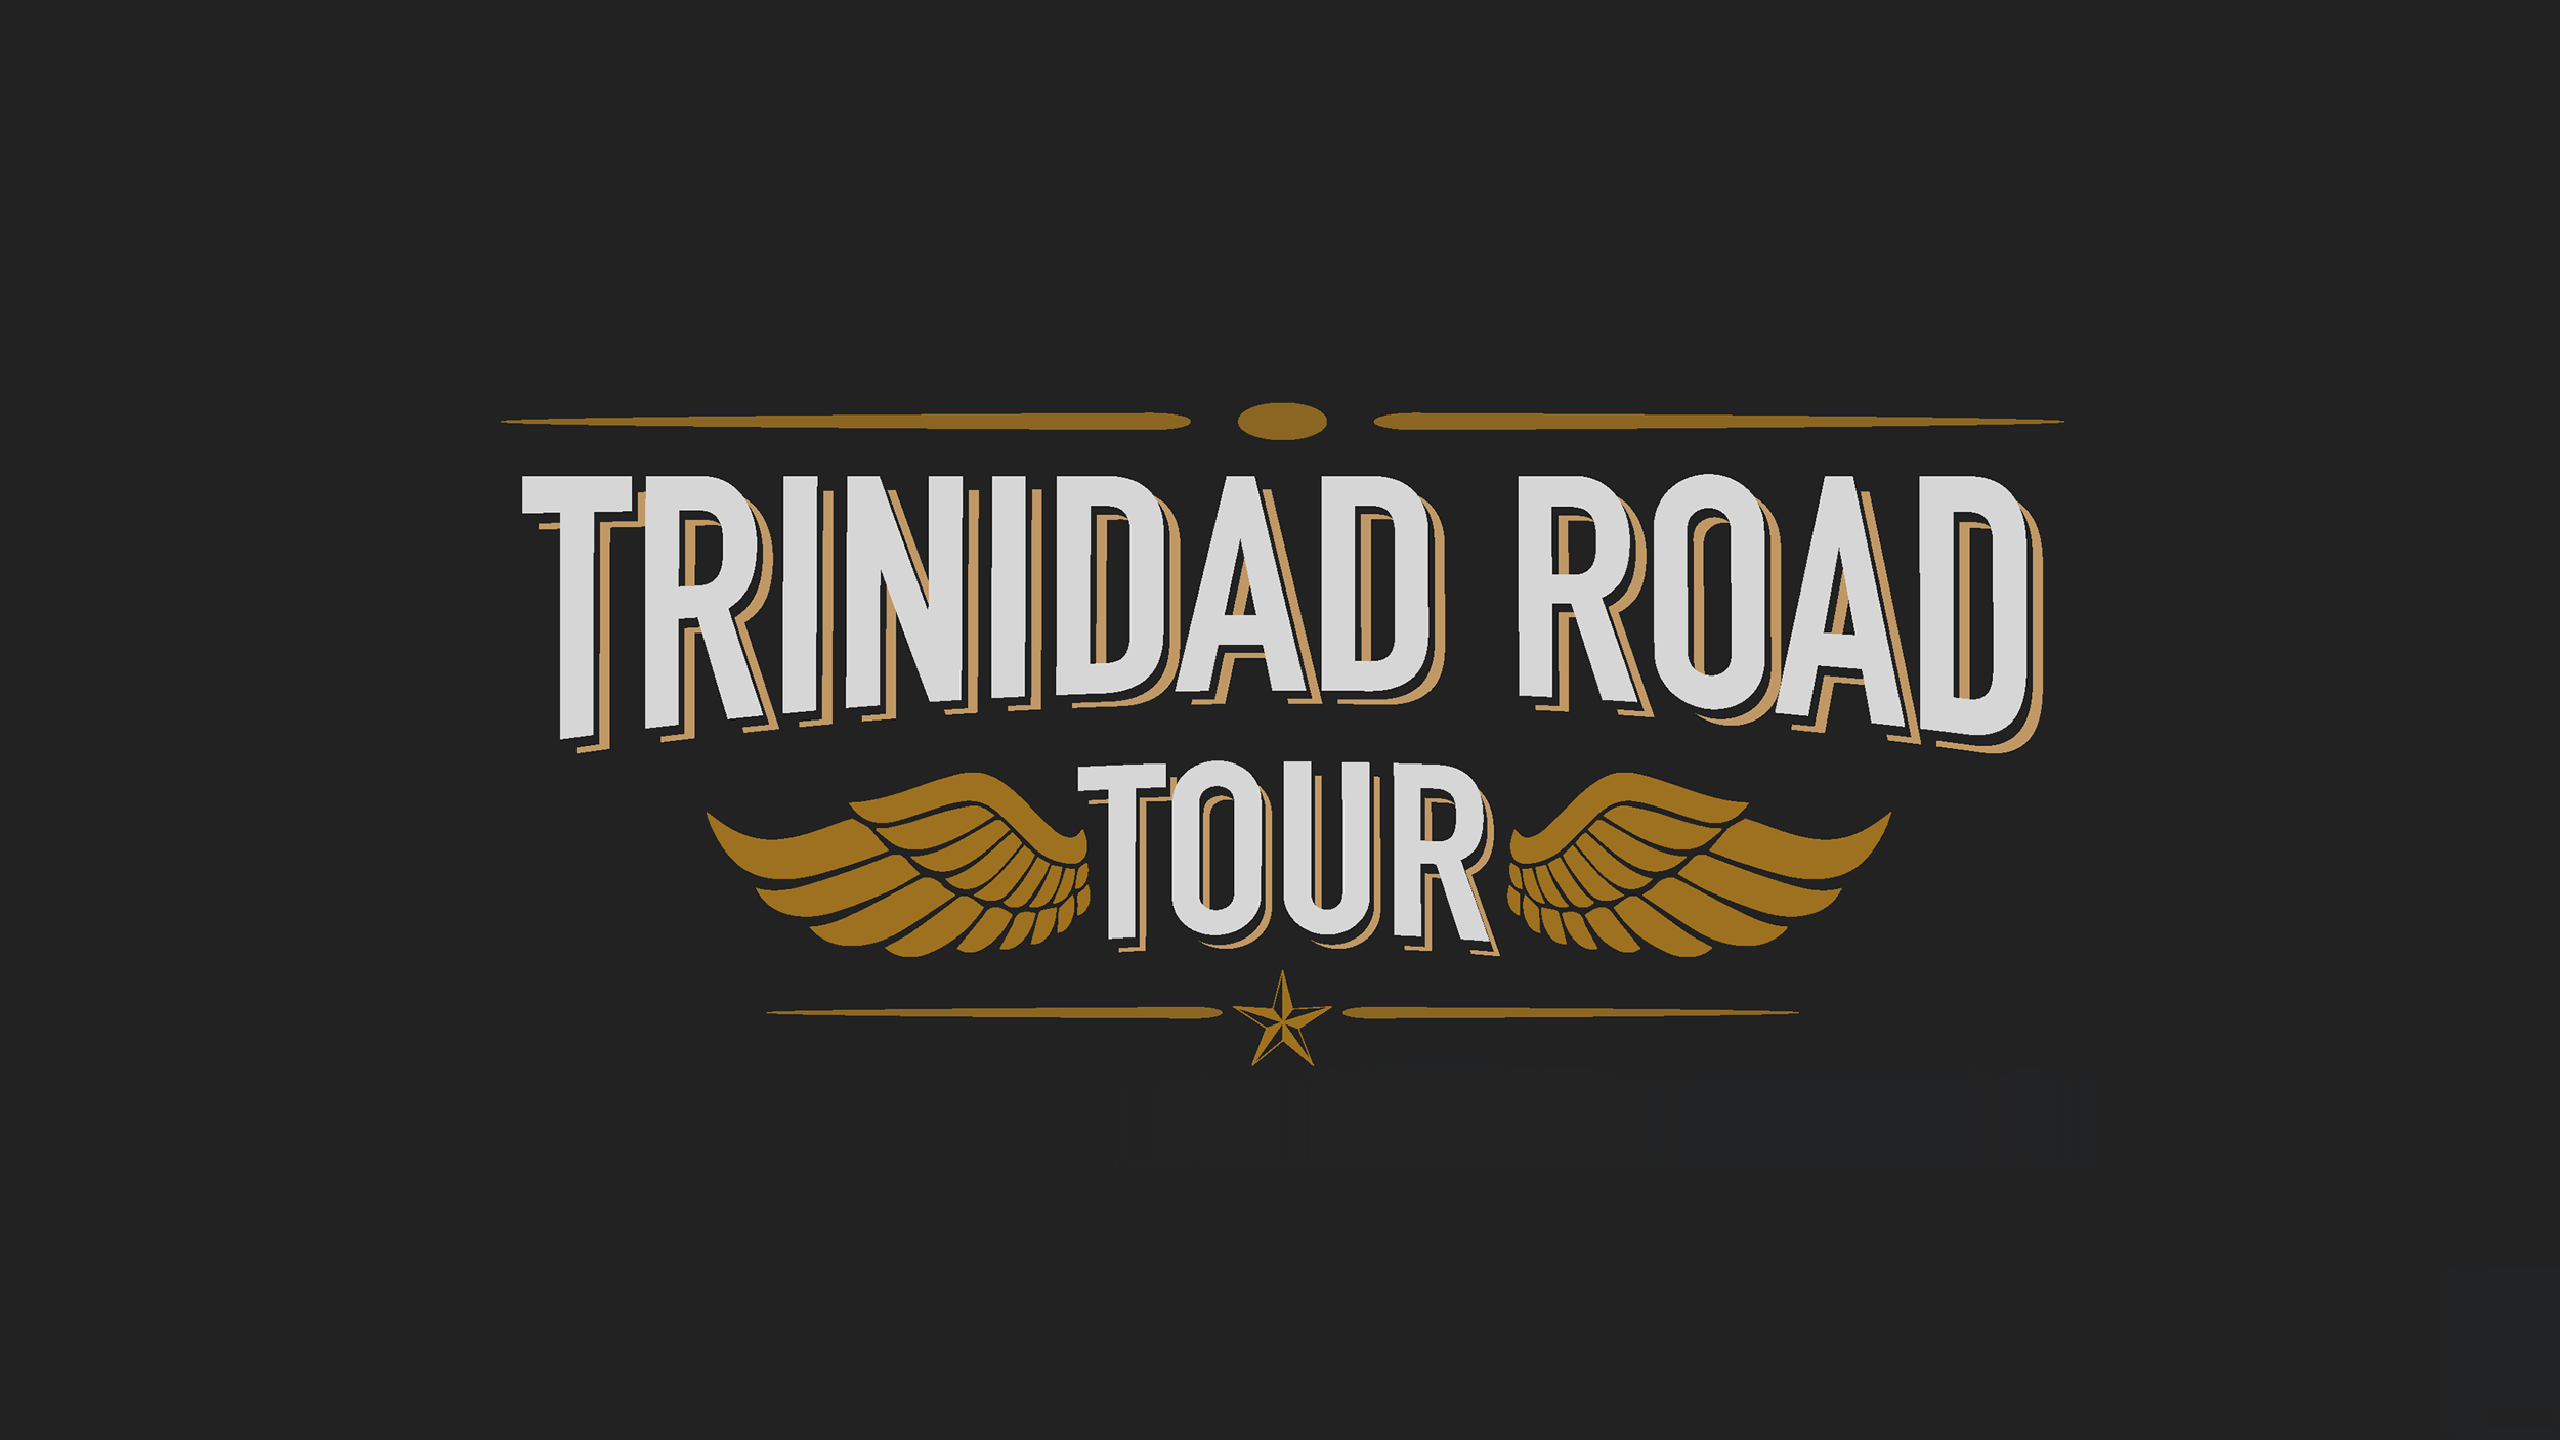 trinidad-road-tour-1517933208.46.2560x1440